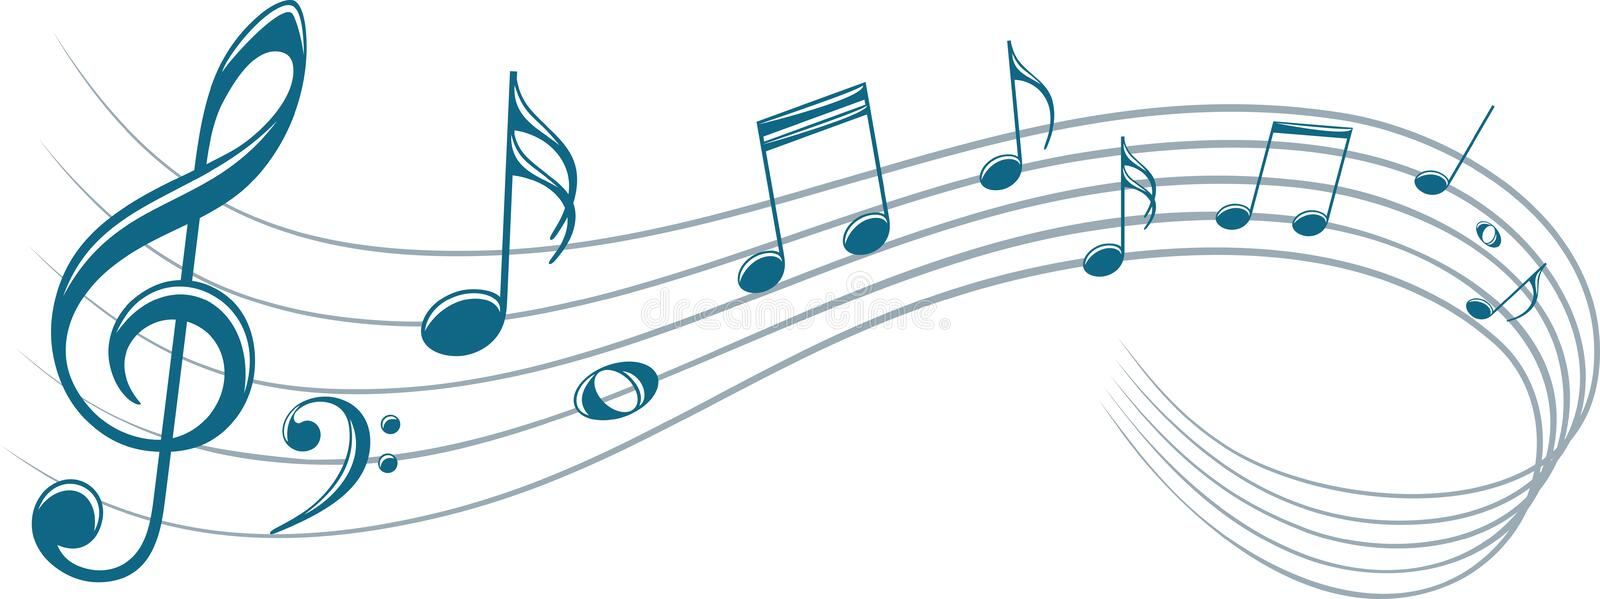 Symbol with music notes. vector illustration